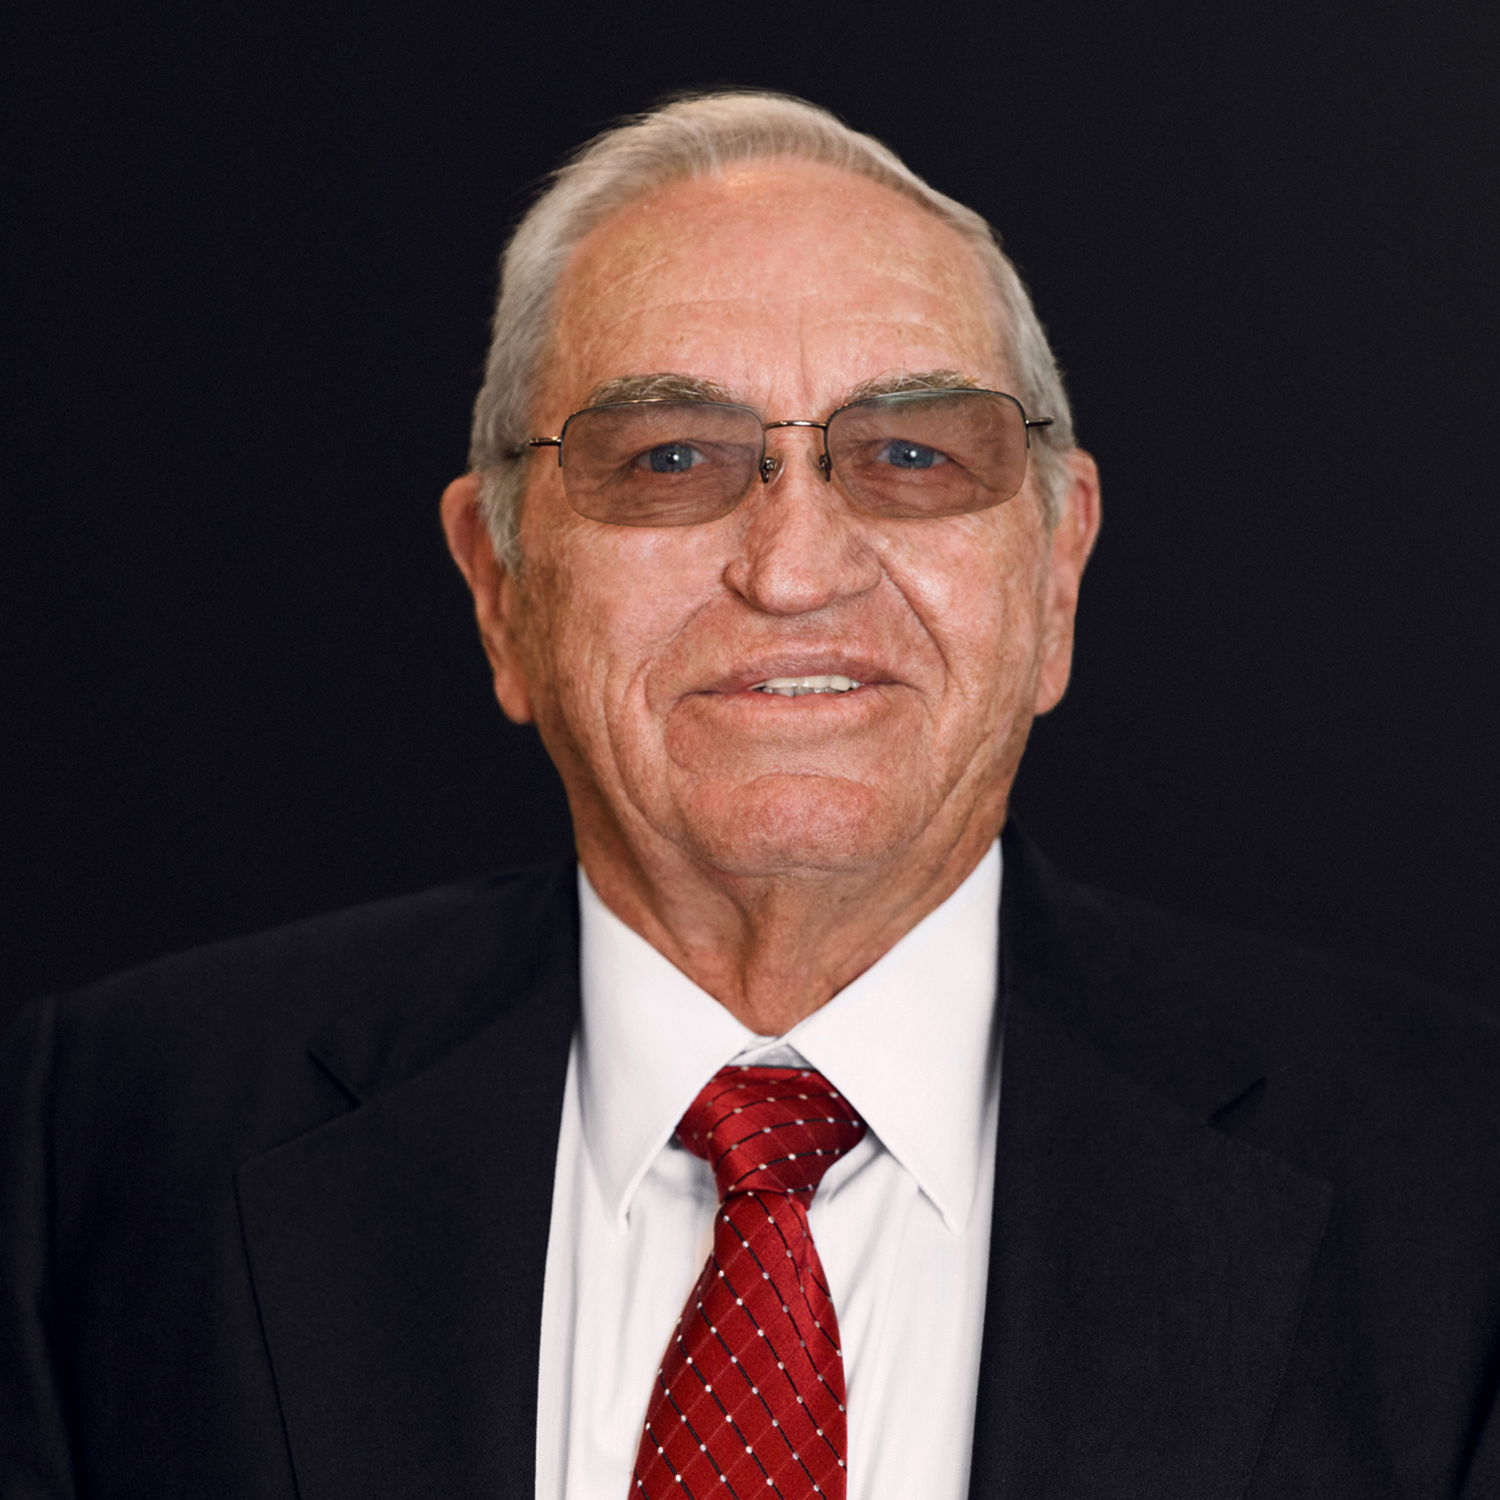 WILLIAM SHERMAN LAYSECRETARY / TREASURER - CPA, CLU, FMLI Over 47 Years Insurance Accounting and Acquisition Experience